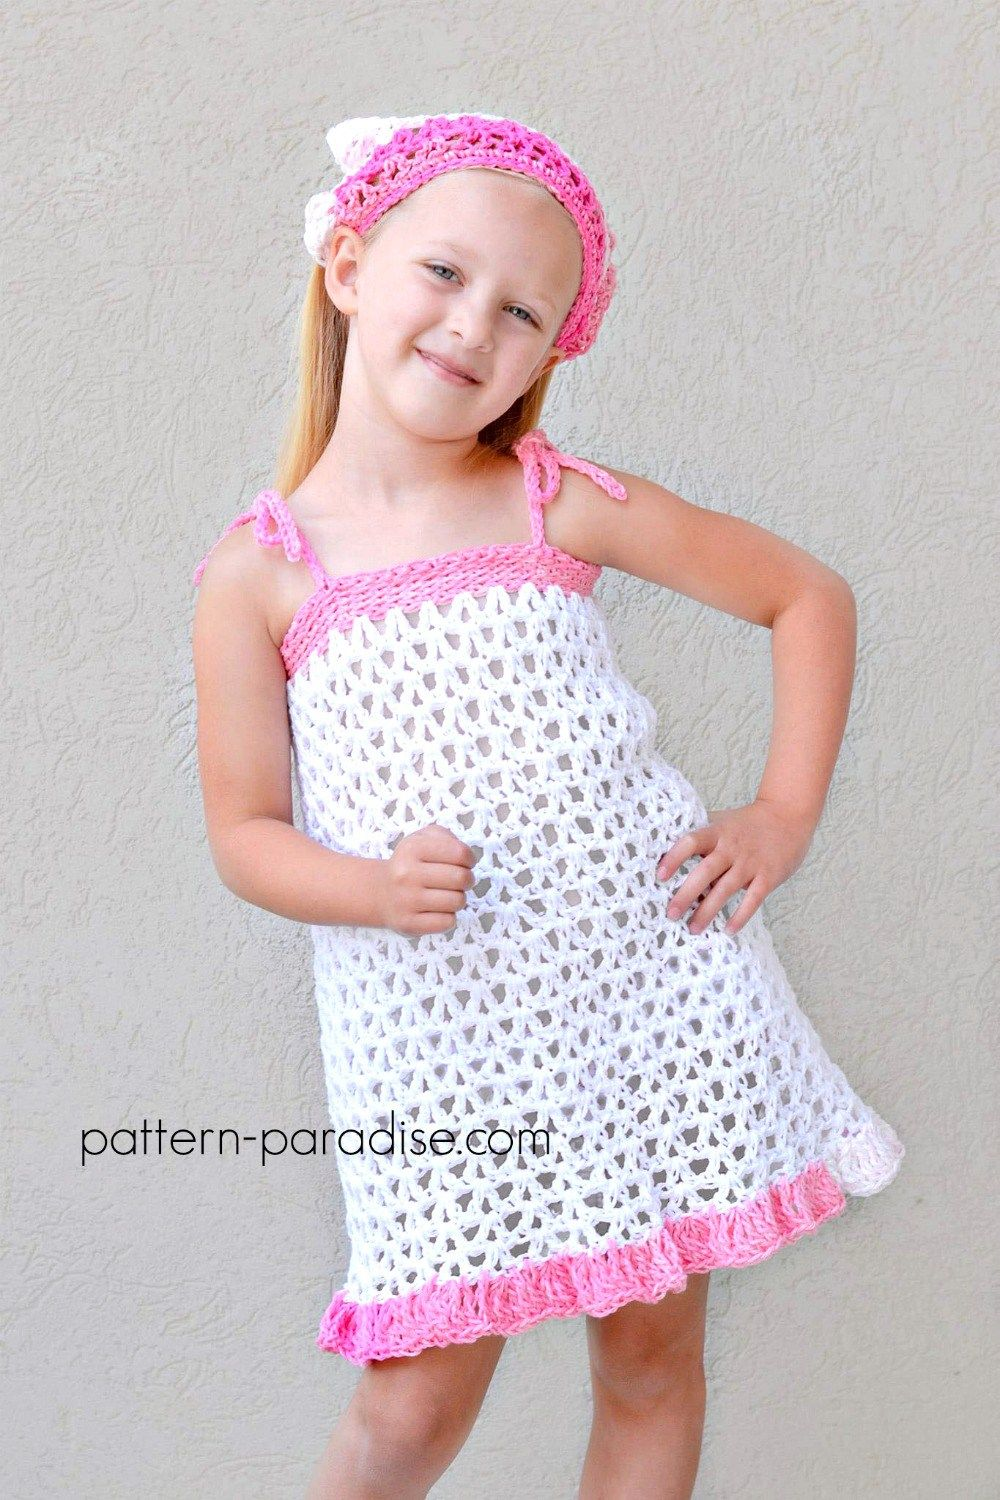 Free Crochet Pattern: Summer Cheer Dress and Kerchief Set